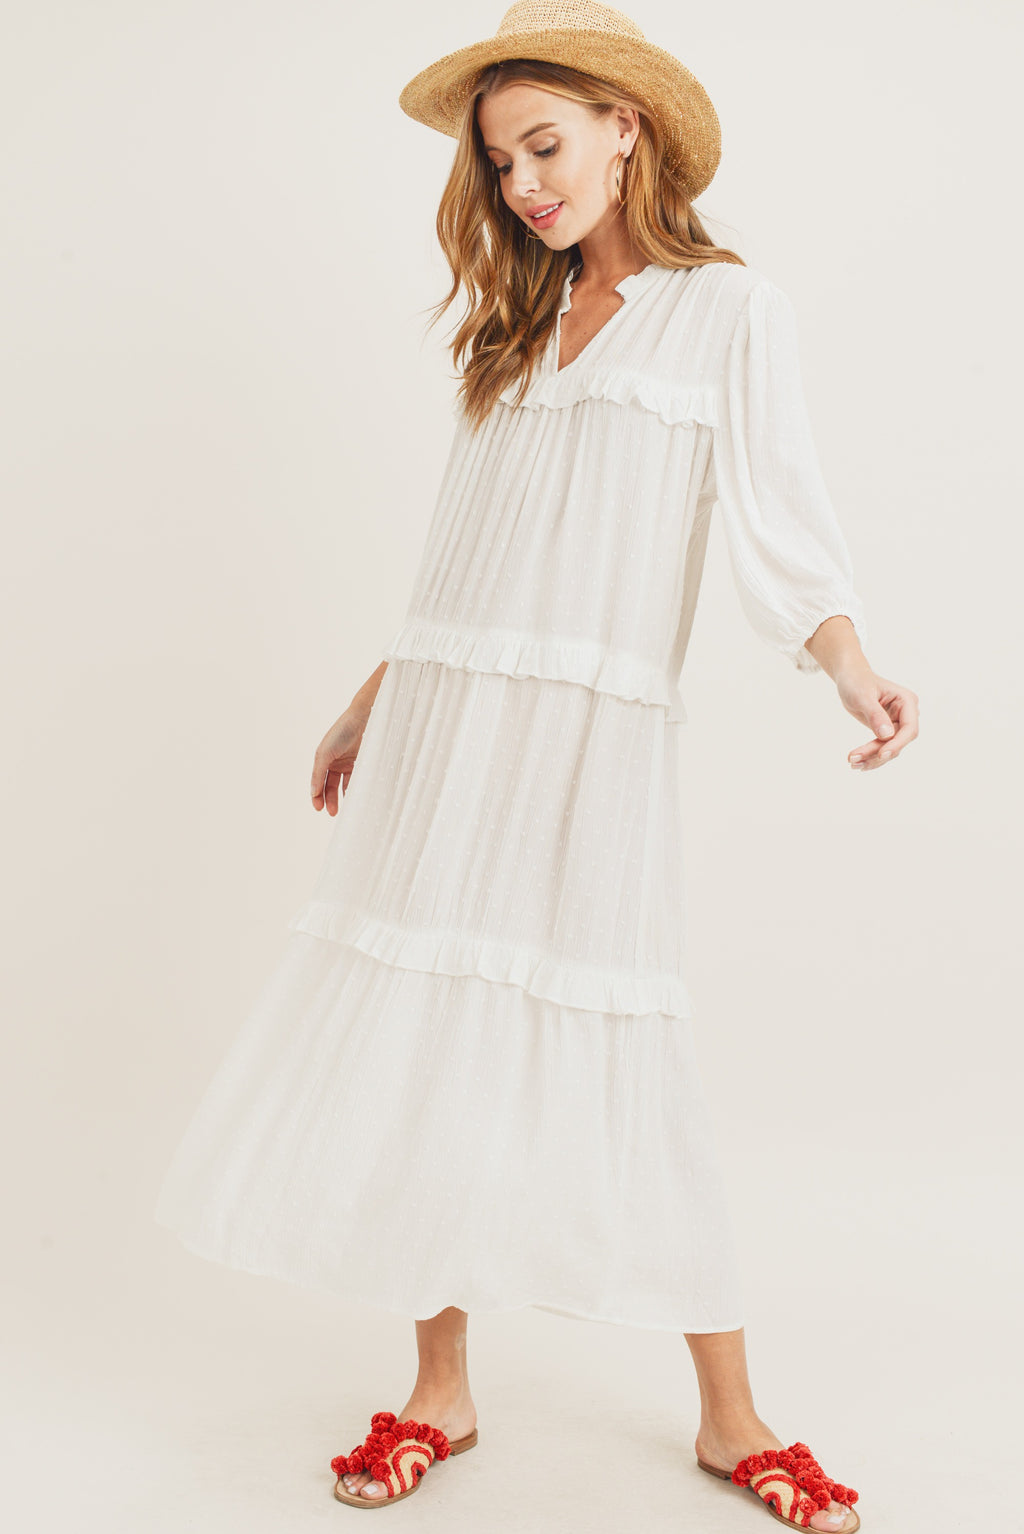 New Threads Dress: White